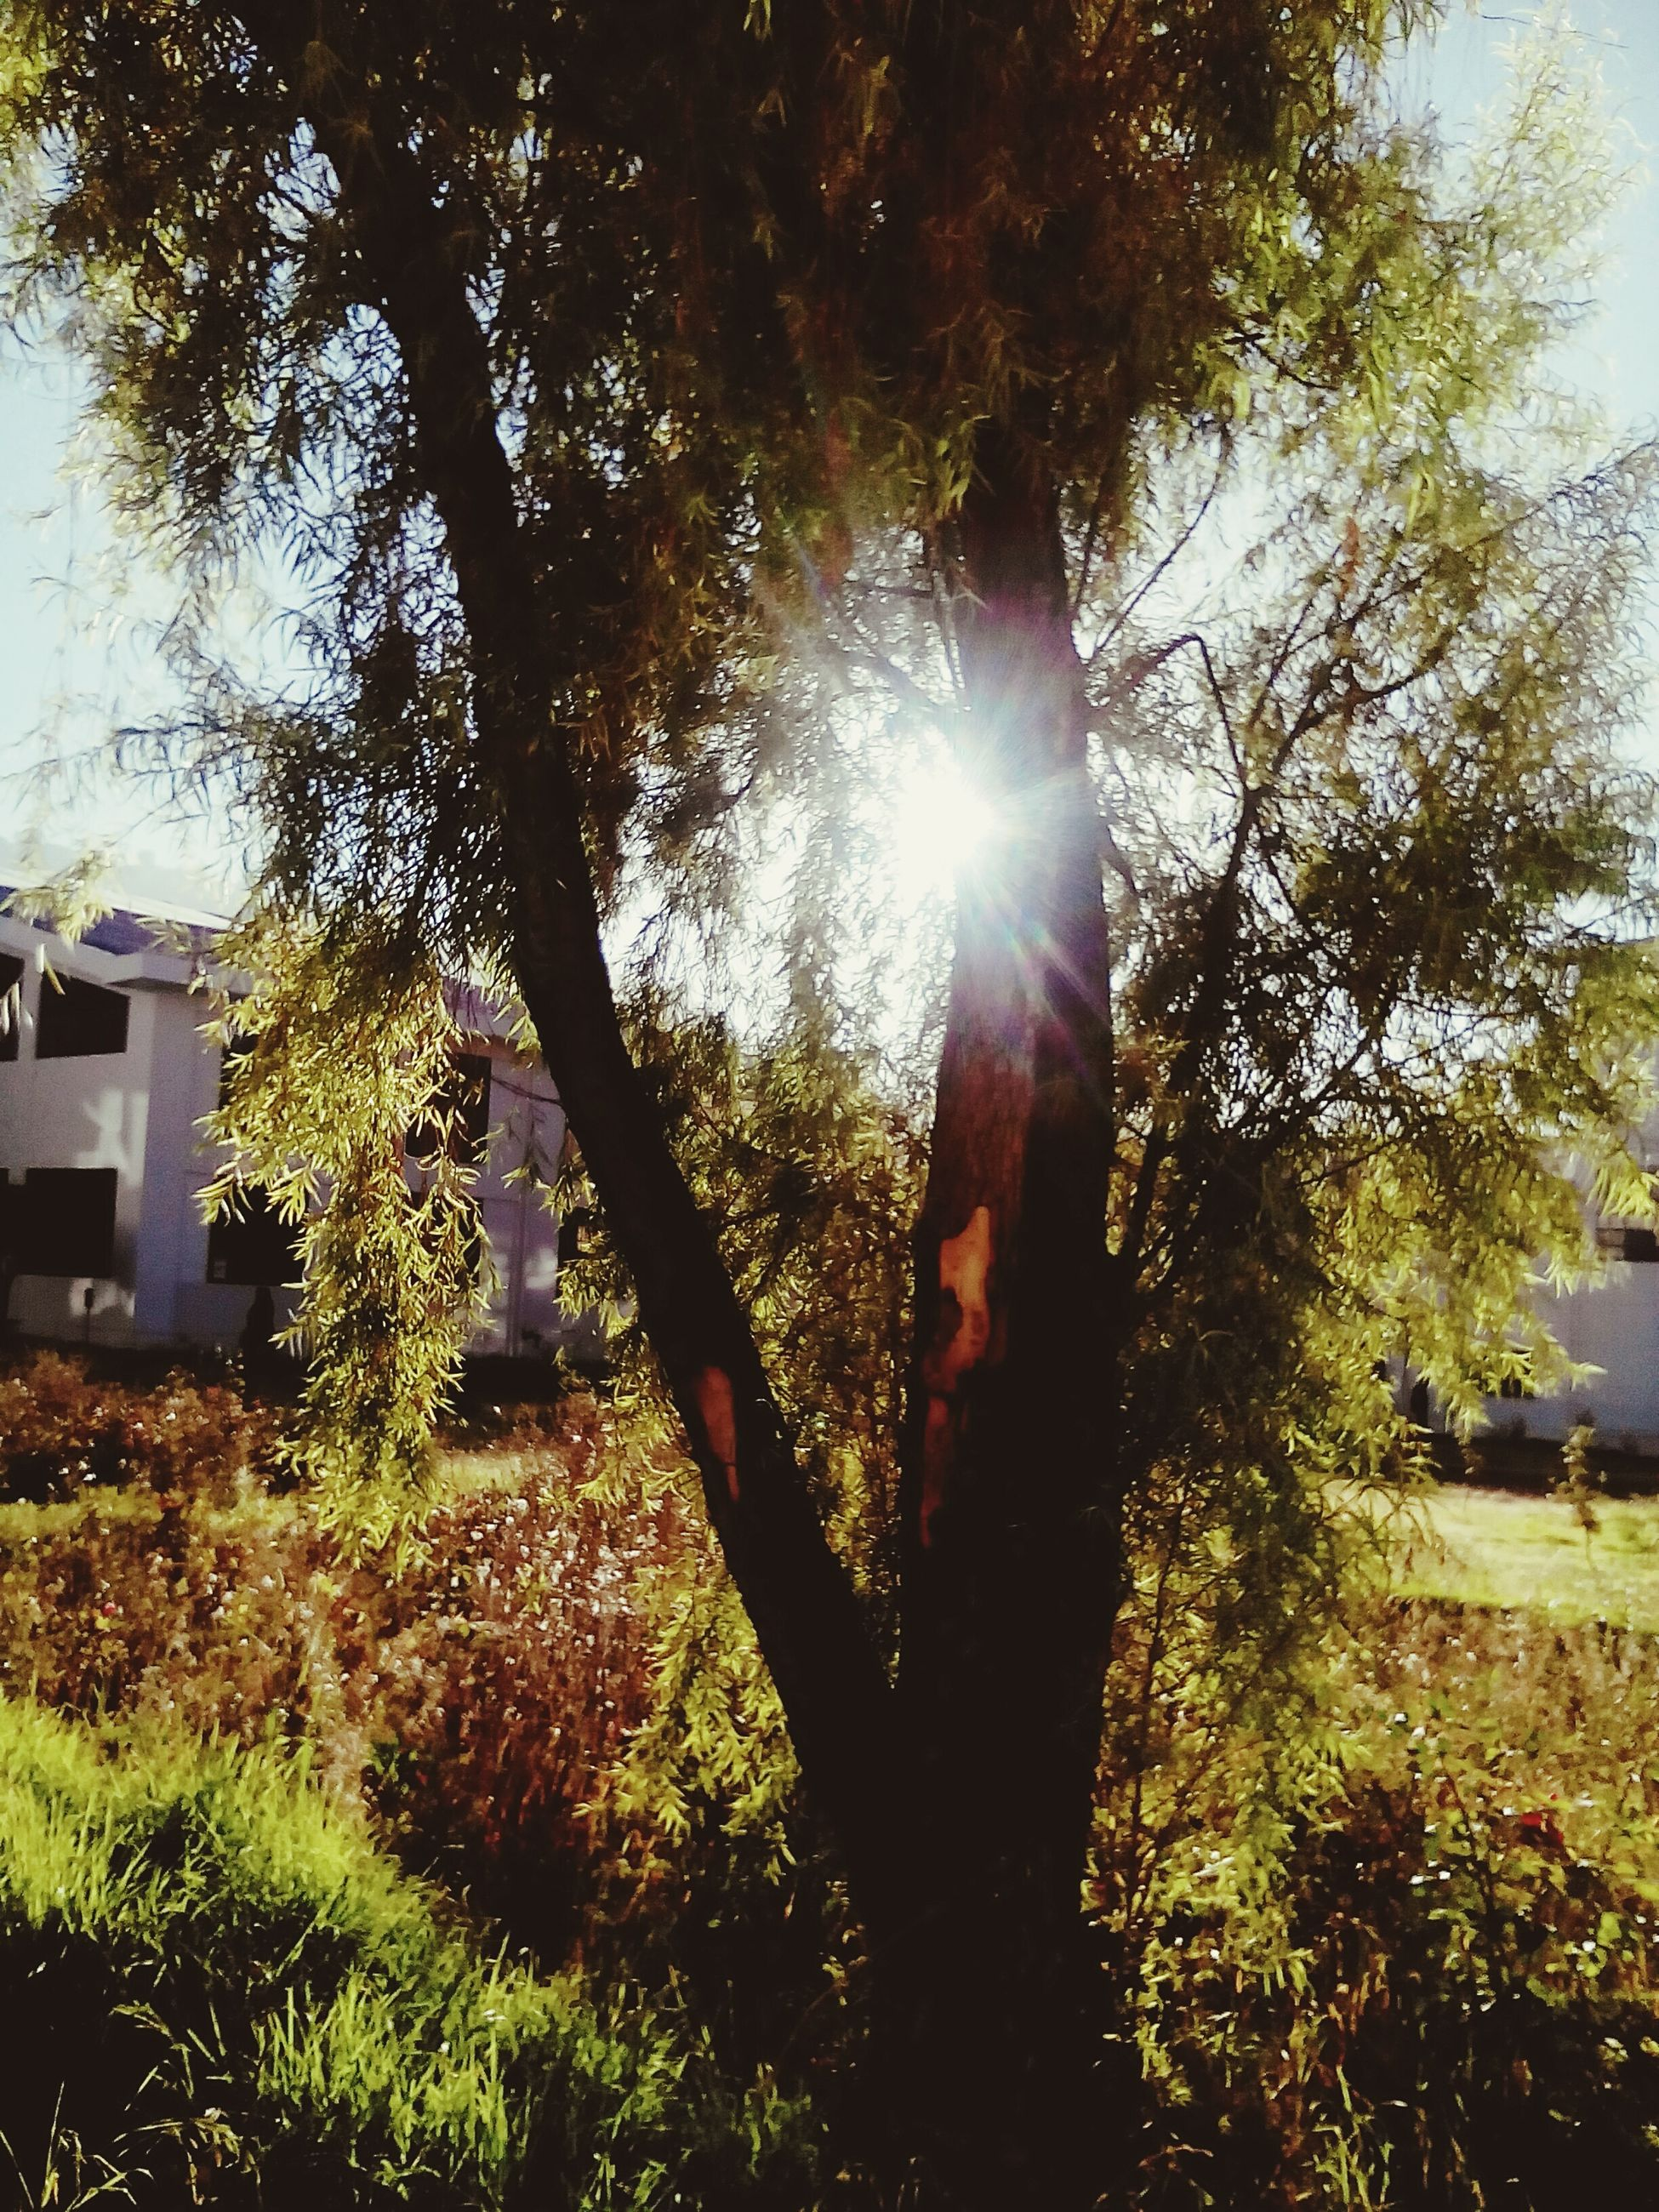 tree, sunlight, sunbeam, sun, day, nature, no people, tranquility, growth, outdoors, built structure, architecture, building exterior, sky, beauty in nature